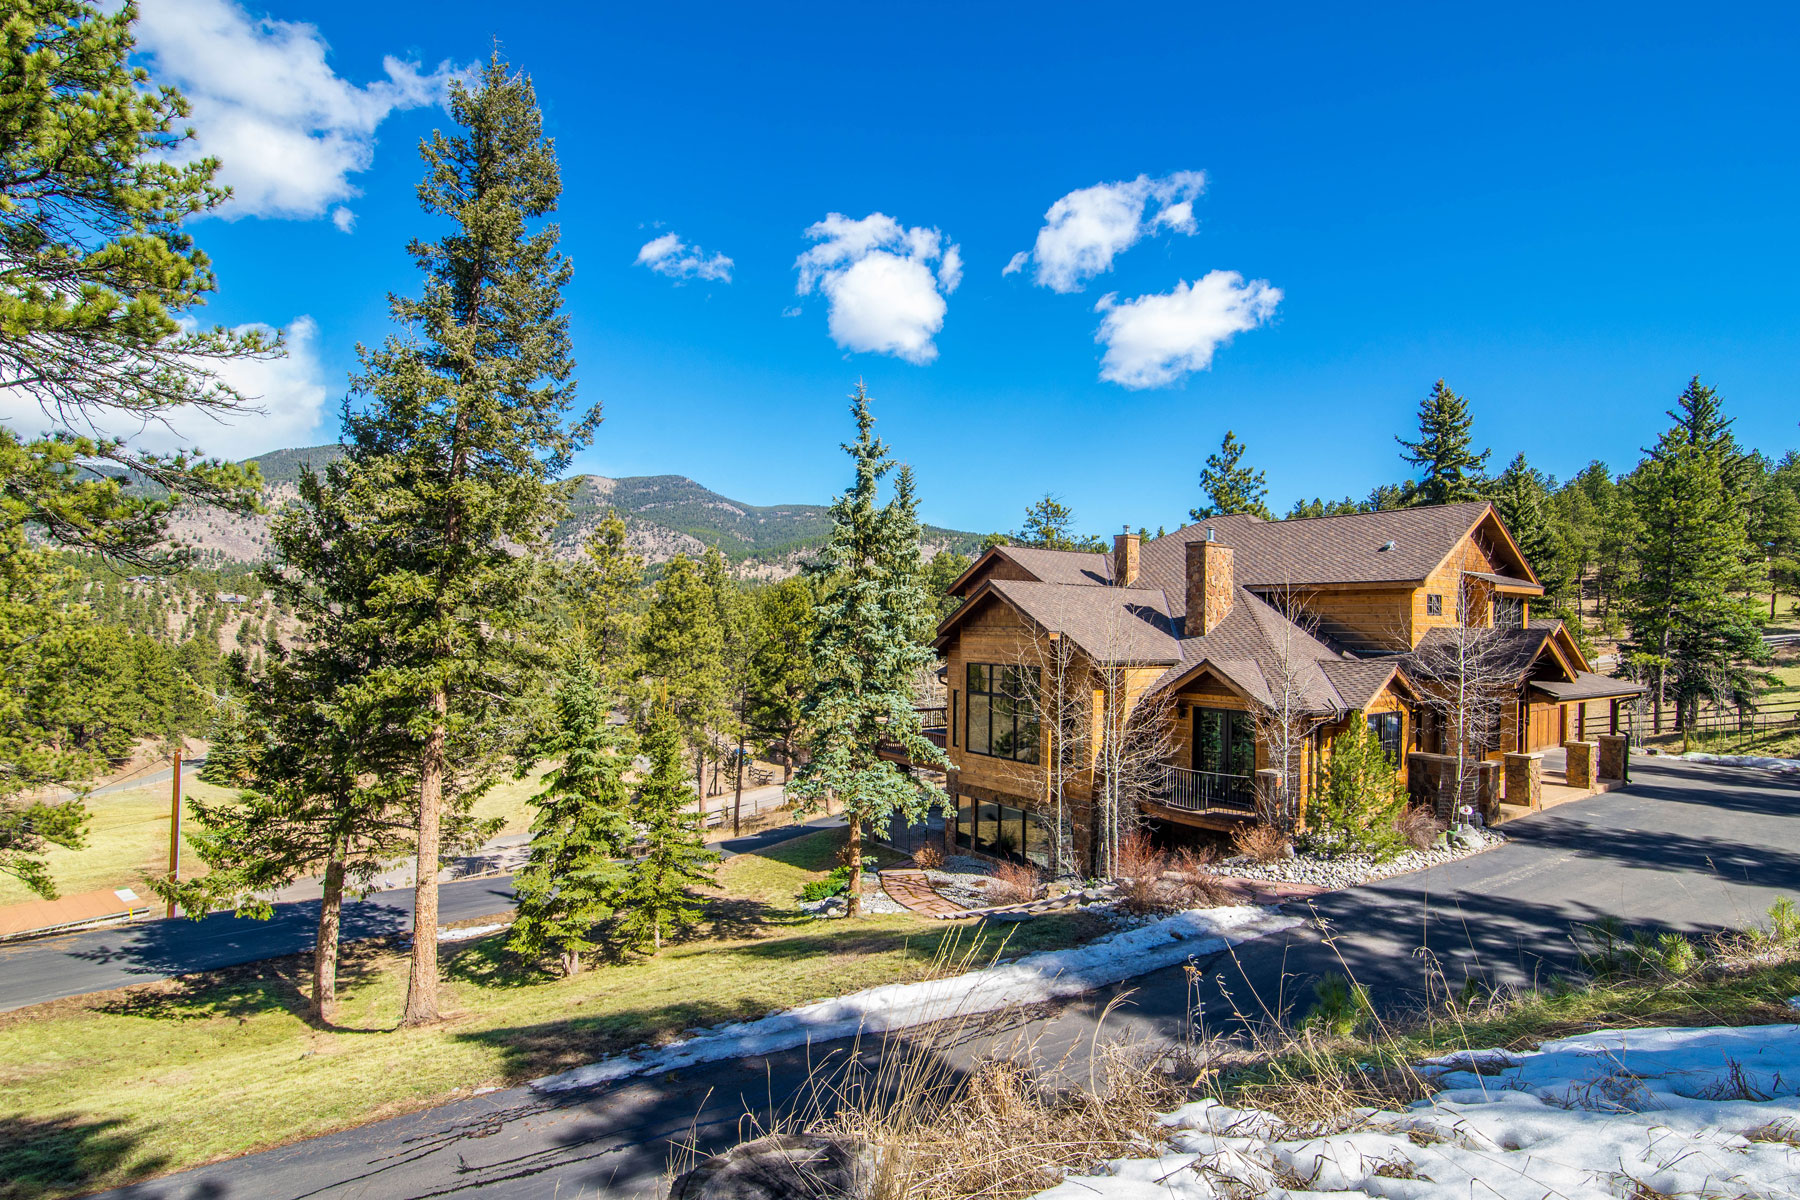 Maison unifamiliale pour l Vente à 92 Whiskey Jay Hill Road Evergreen, Colorado, 80439 États-Unis